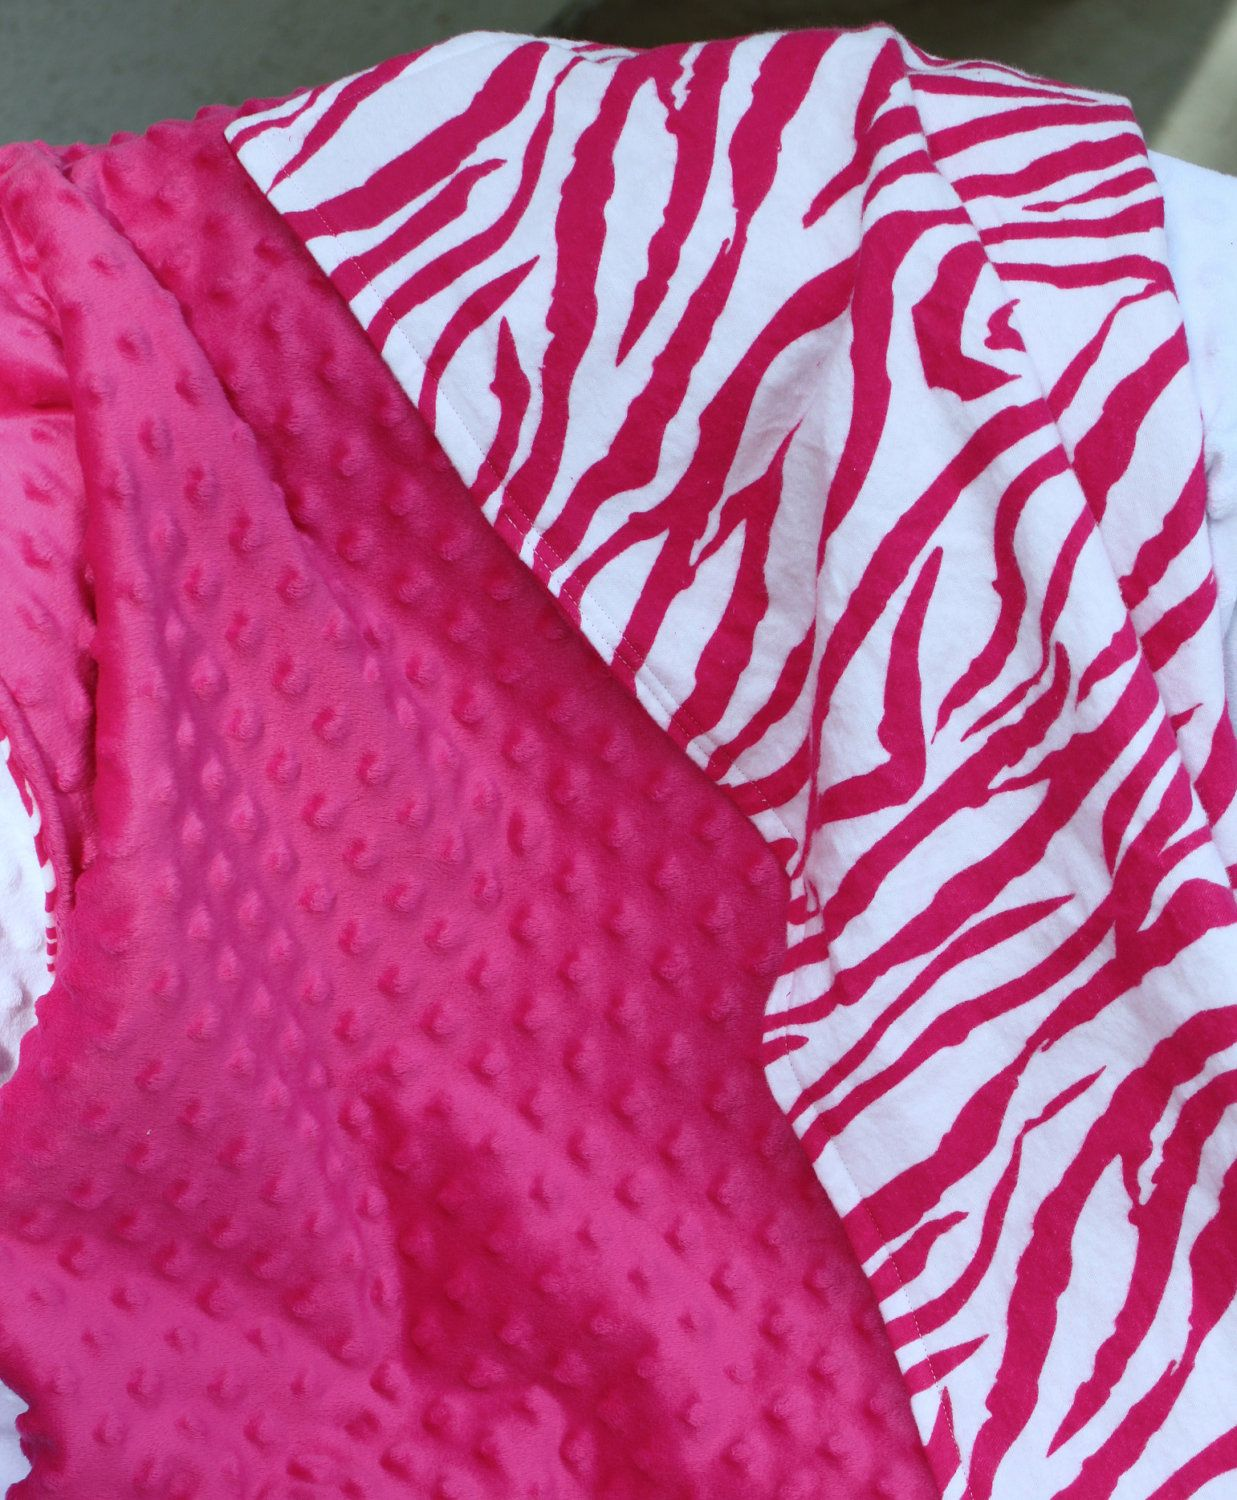 Baby or Toddler Girl Hot Pink Minky Dot and Pink Zebra Flannel Blanket  28